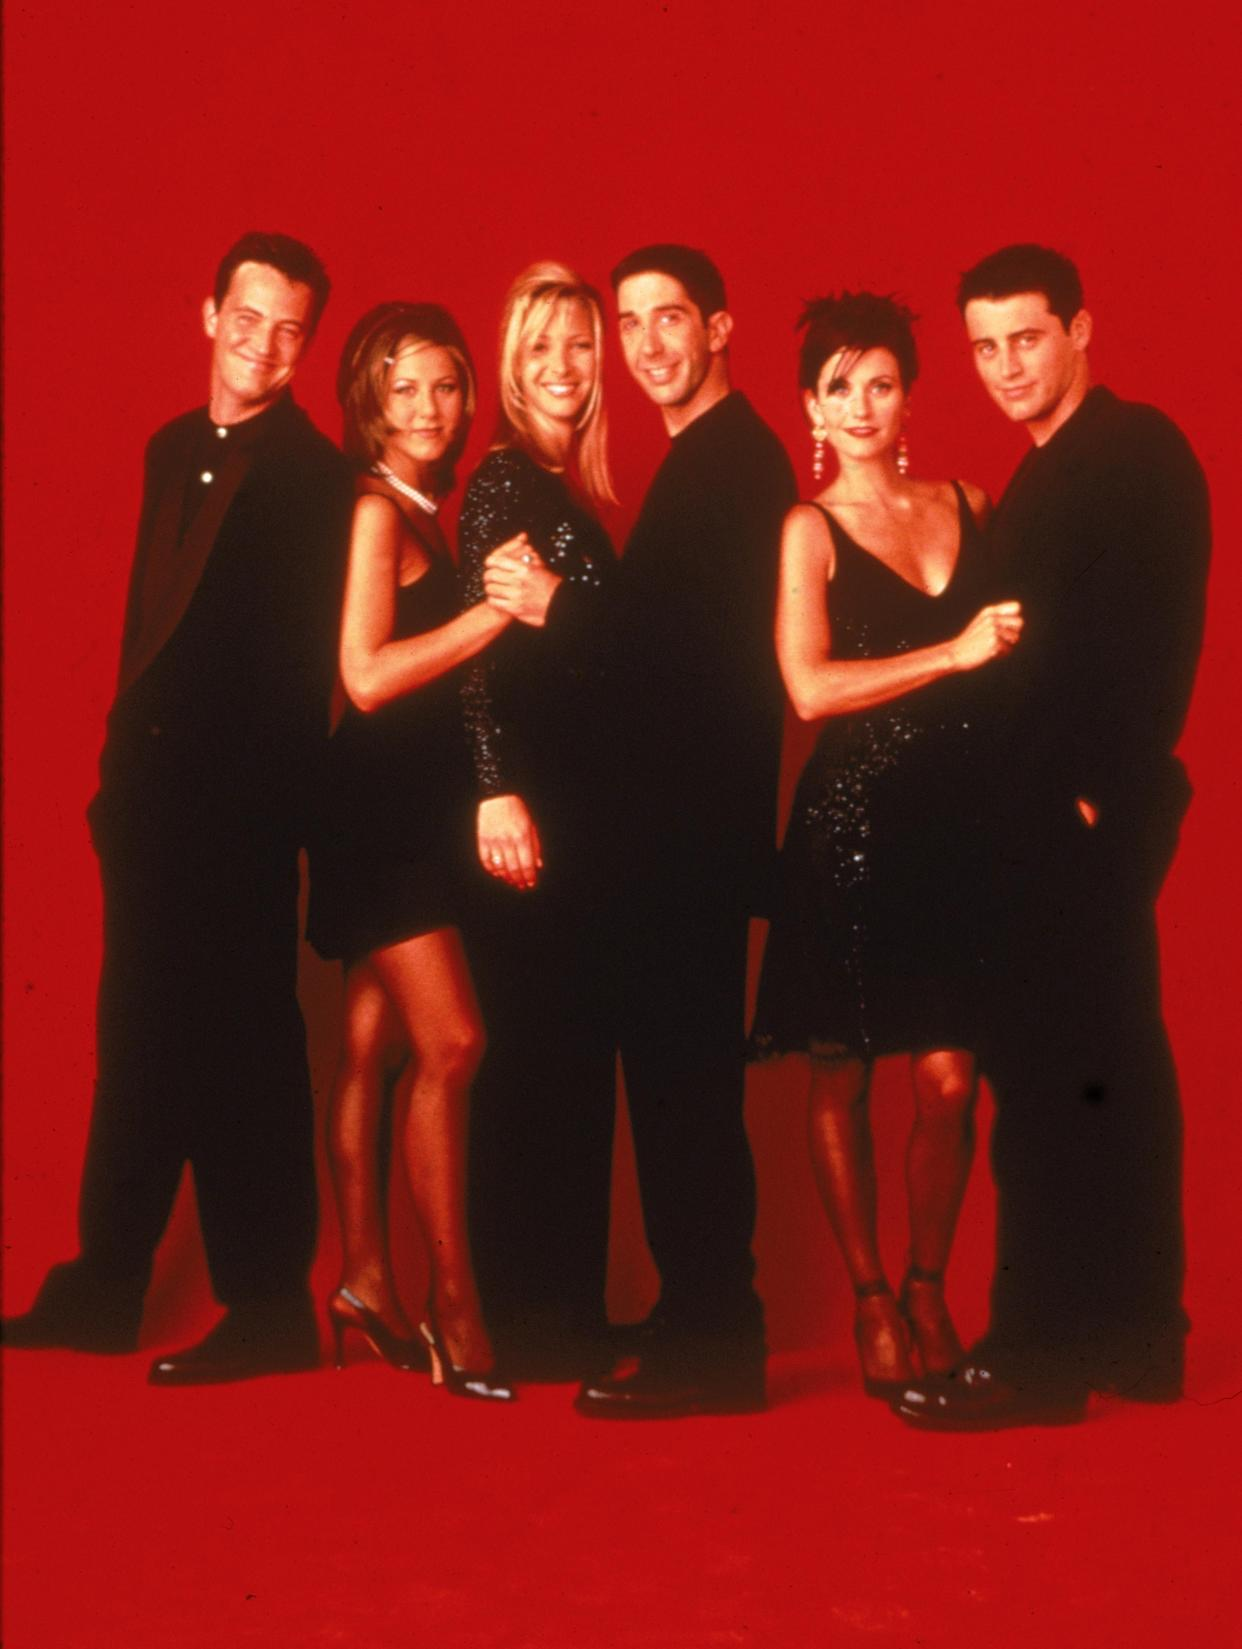 Promotional portait of the cast of the television series, 'Friends,' wearing black against a red backdrop, circa 1995. L-R: Matthew Perry, Jennifer Aniston, Lisa Kudrow, David Schwimmer, Courteney Cox, and Matt LeBlanc. (Photo by Warner Brothers Television/Fotos International/Courtesy of Getty Images)